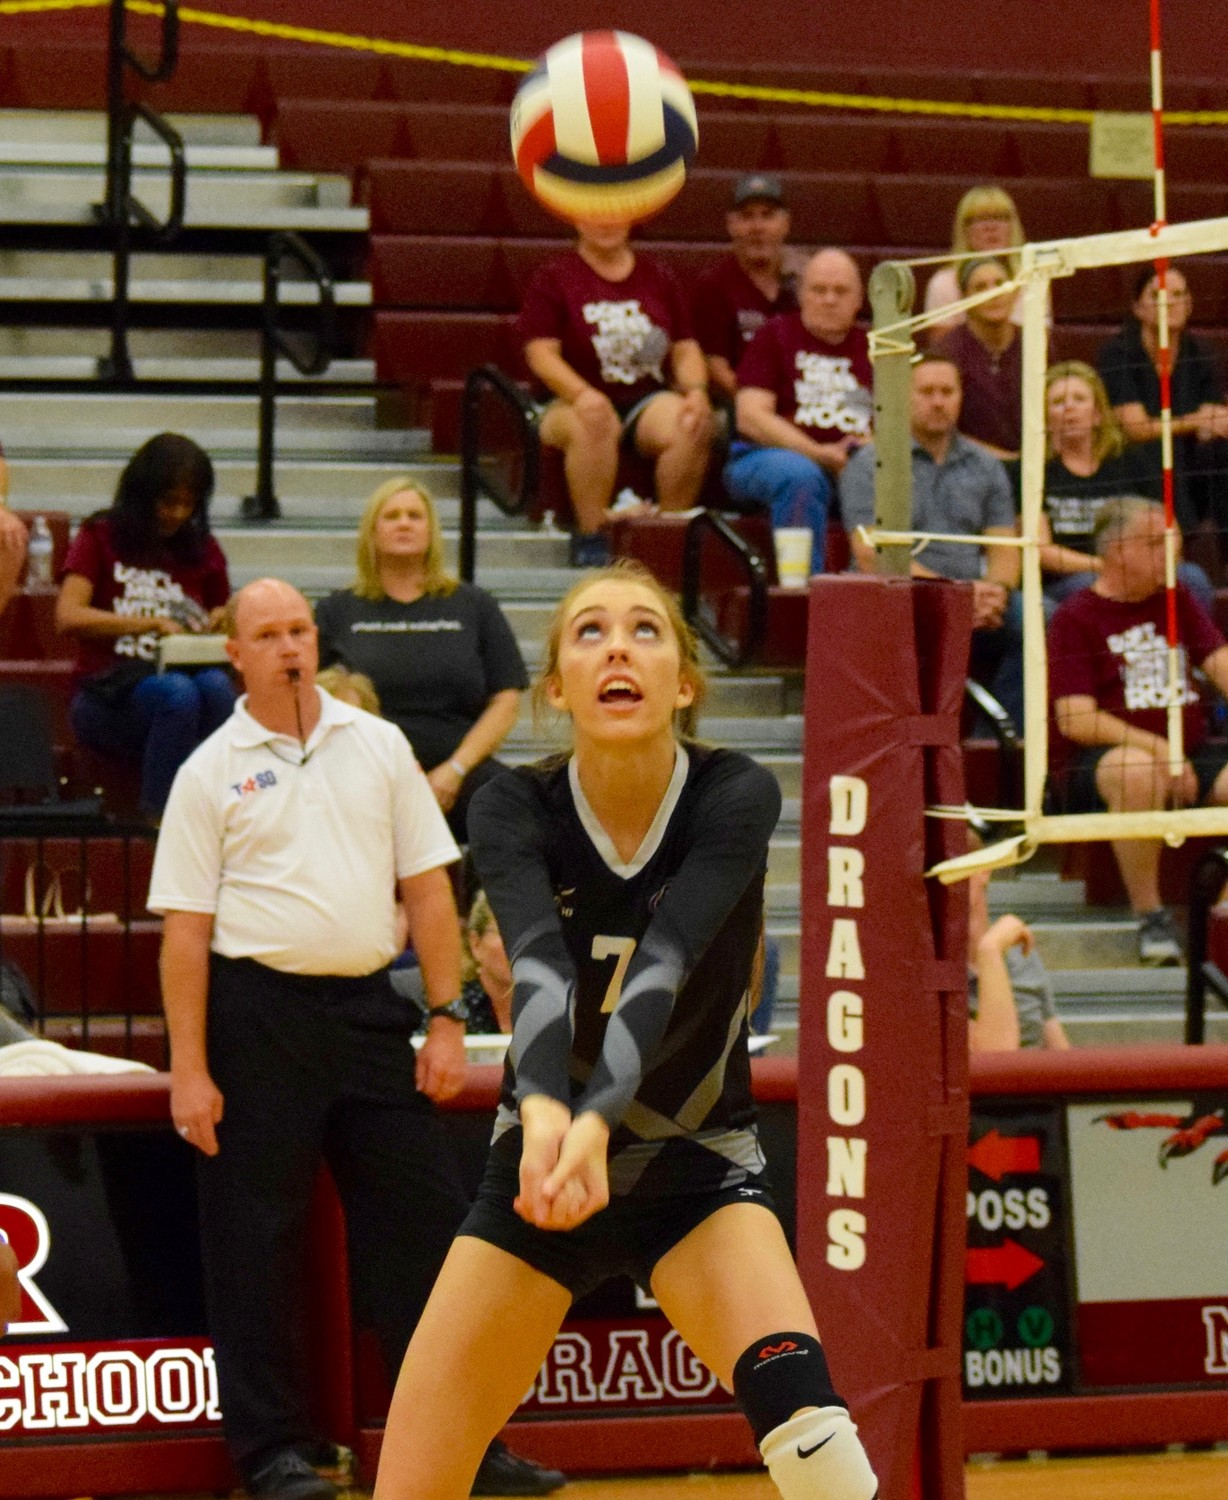 Cassie Cox and Cedar Ridge lost to Round Rock  3-0 (25-18, 25-22, 25-23) on Tuesday night.